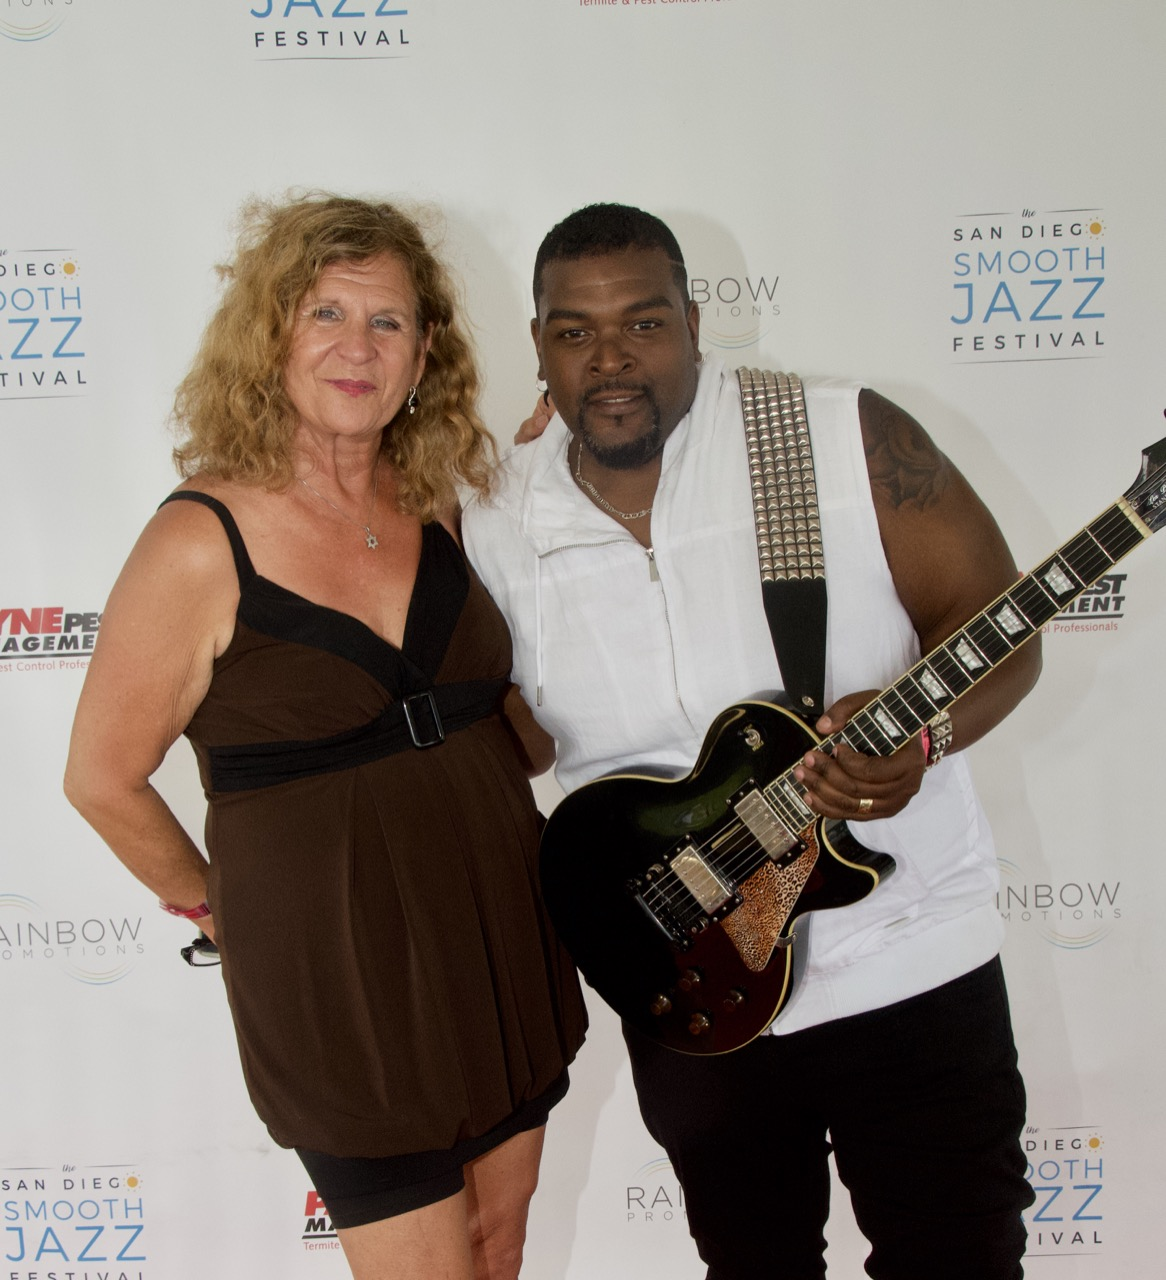 The 3rd Annual San Diego Smooth Jazz Festival Recap